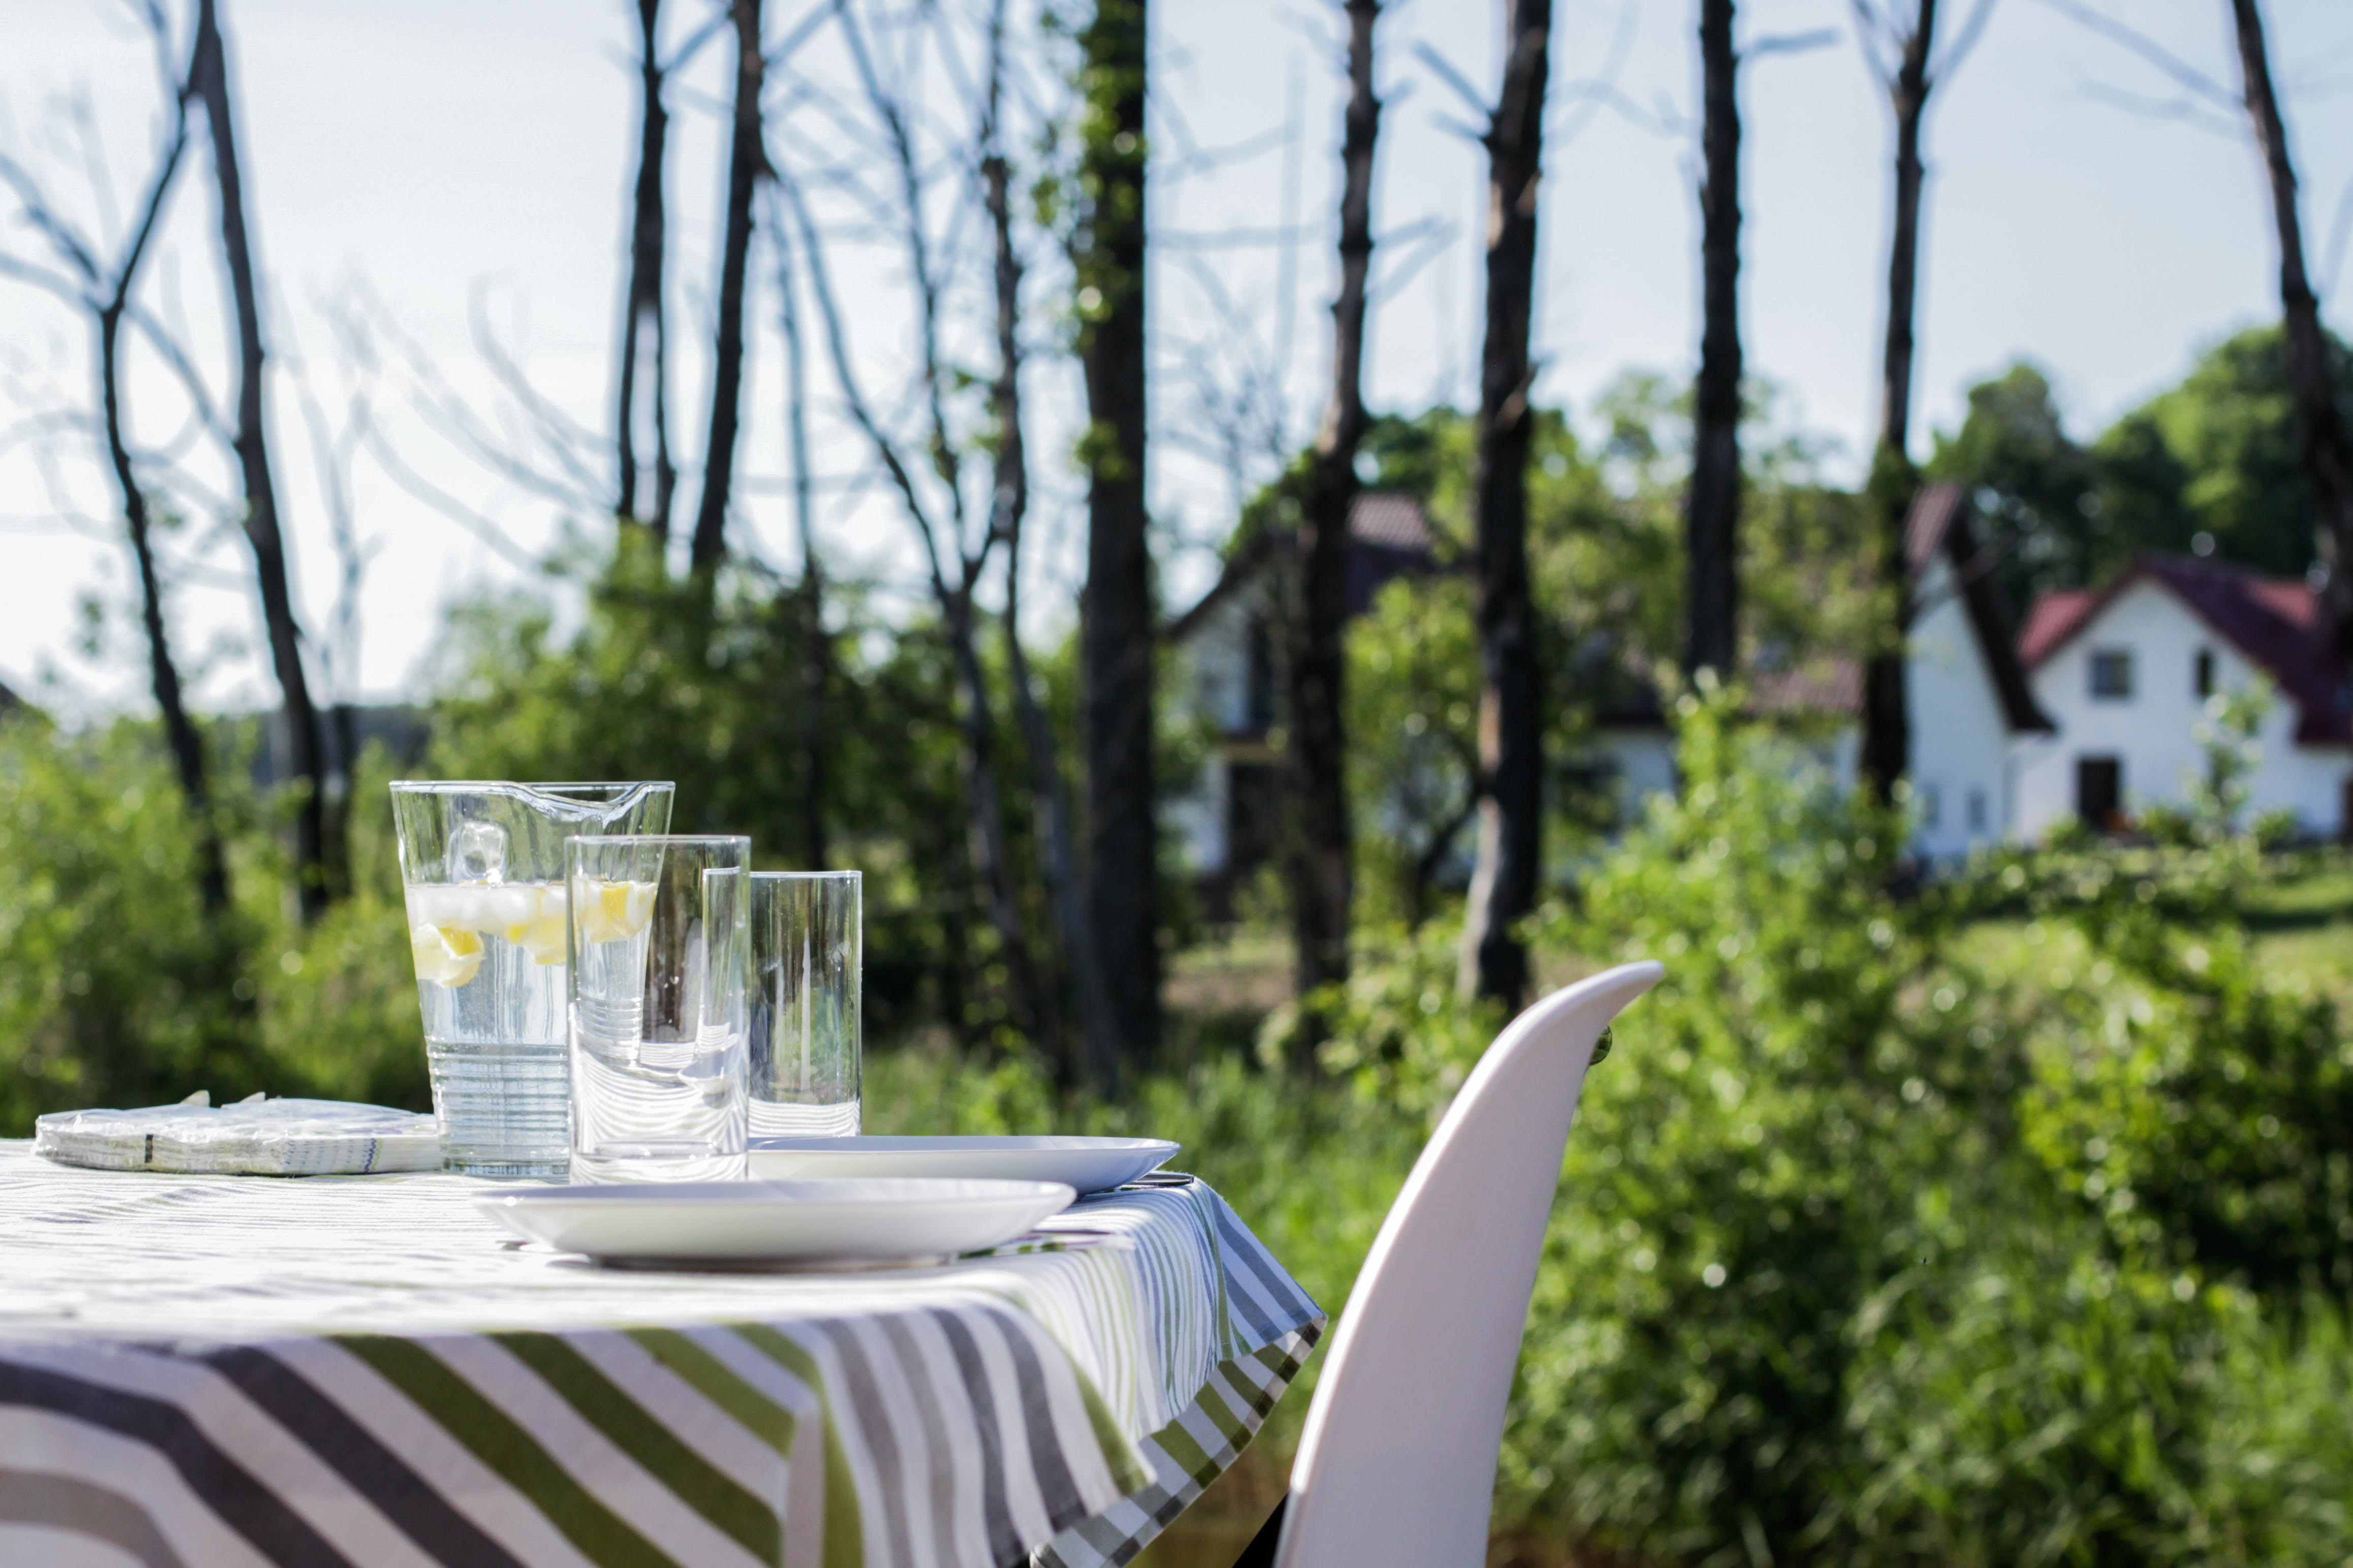 Free stock photo of houses, trees, table, green